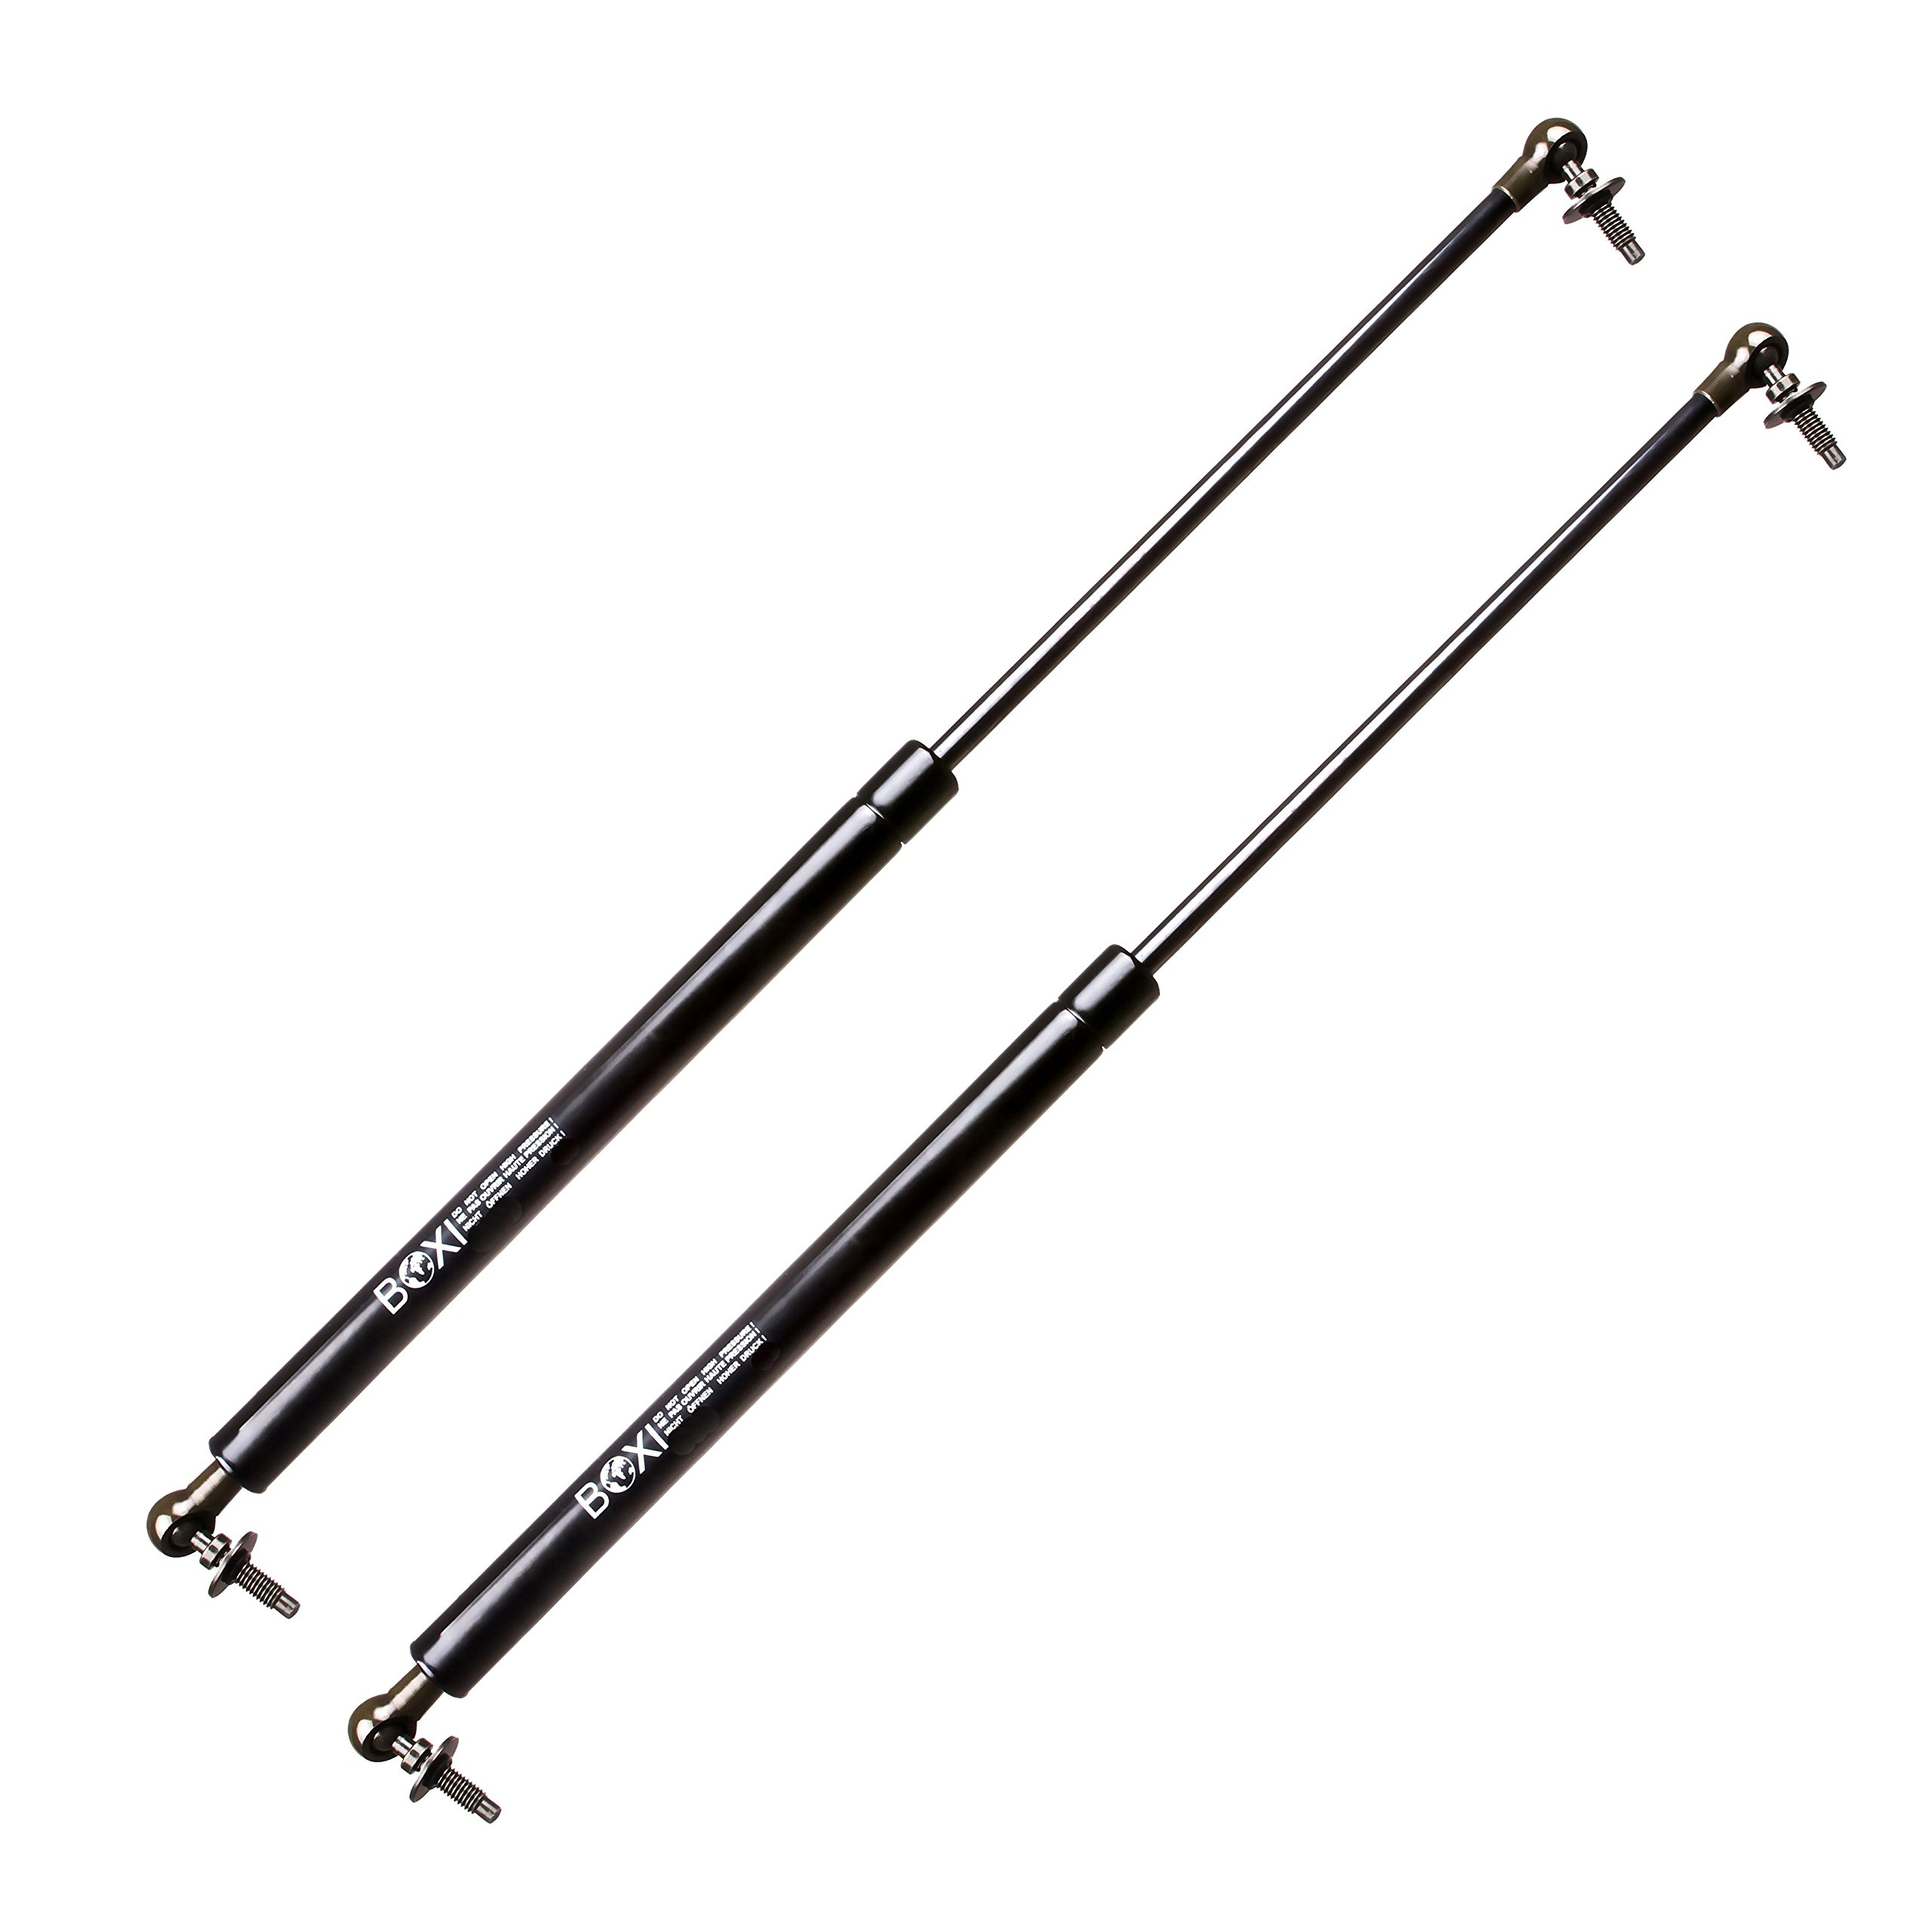 Boxi 2pcs Tailgate Lift Support For Chrysler Pt Cruiser